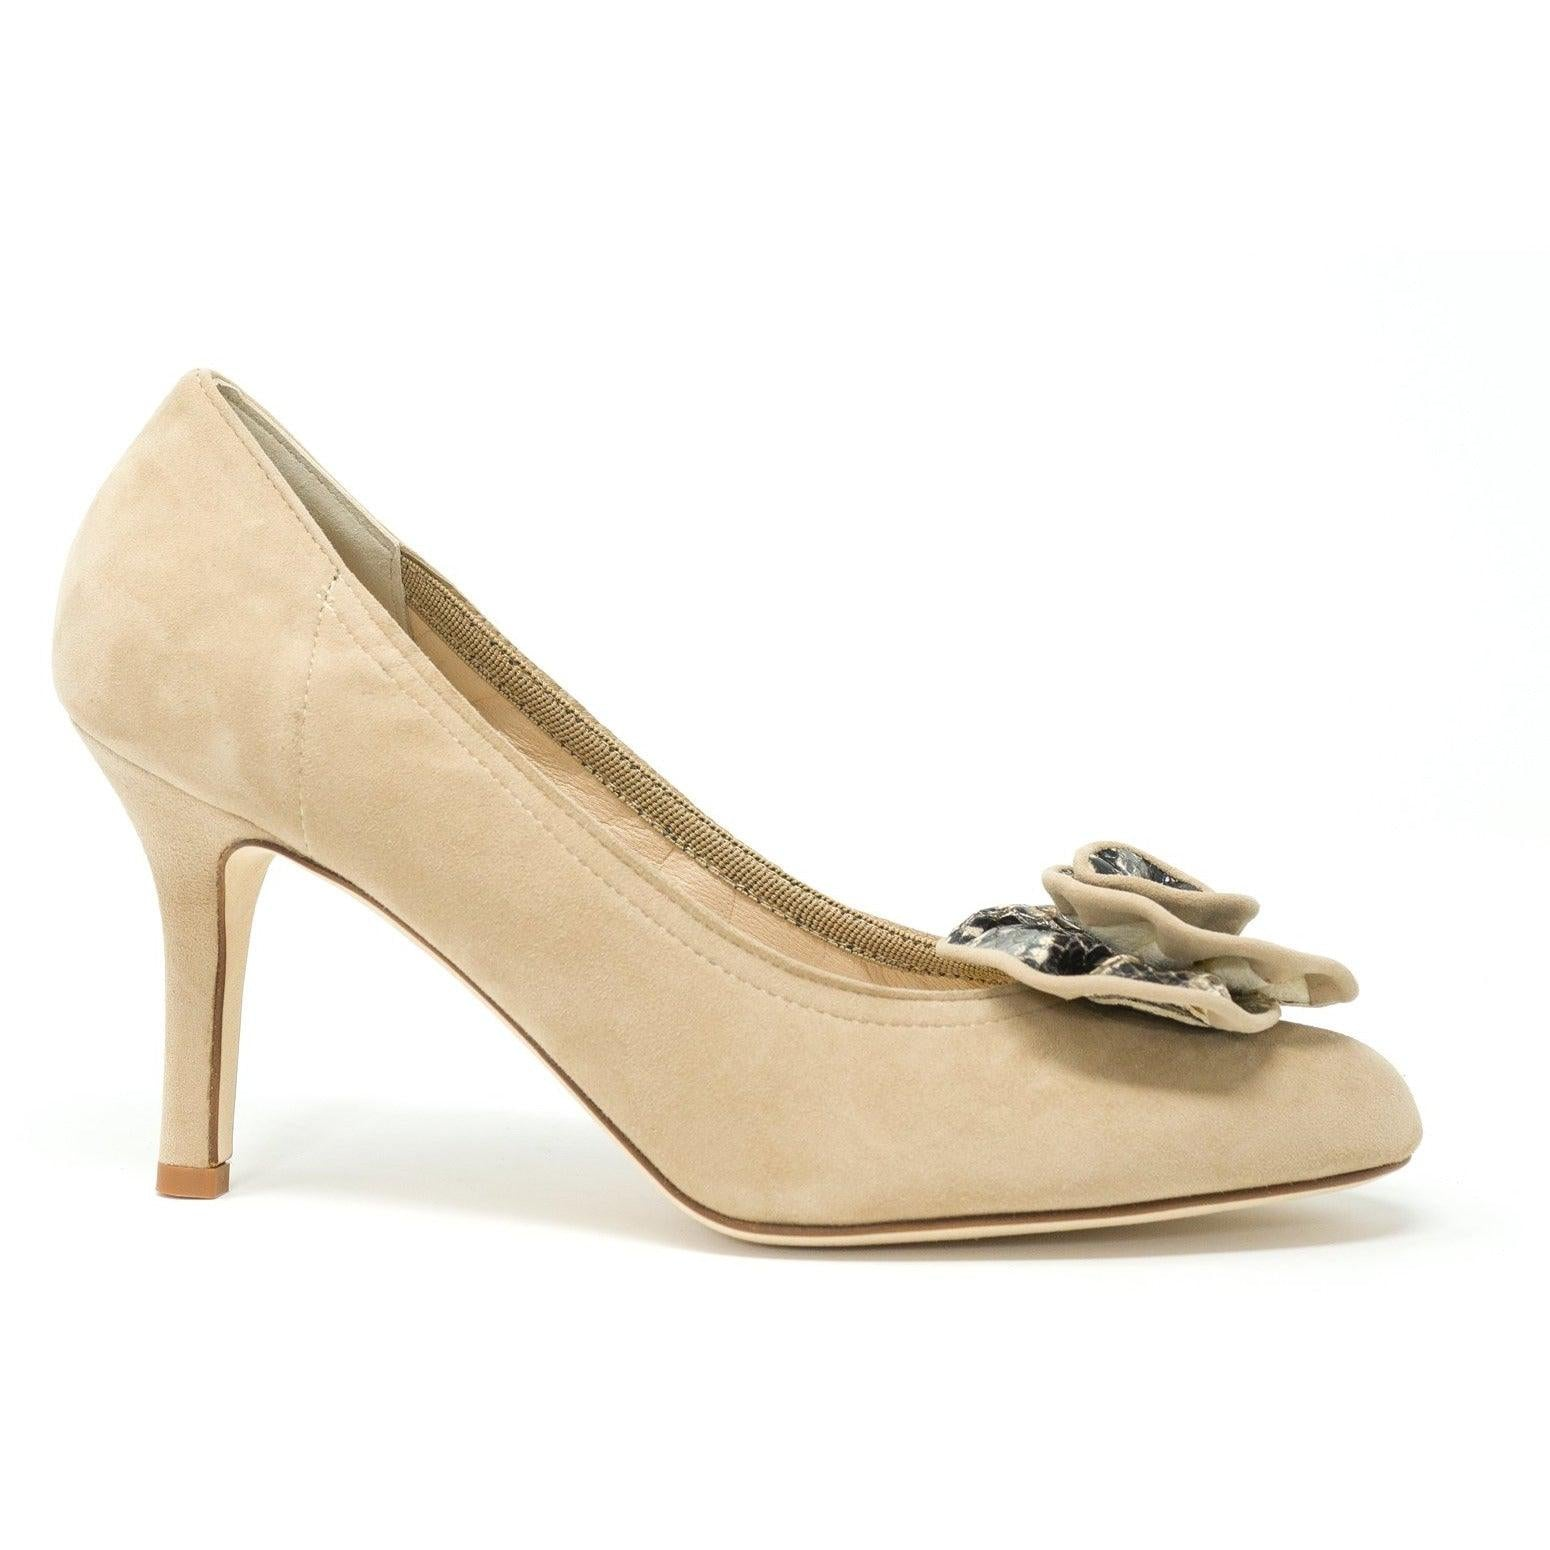 MIL461F 80T Women Pumps - New Spring Summer 2020 Collection